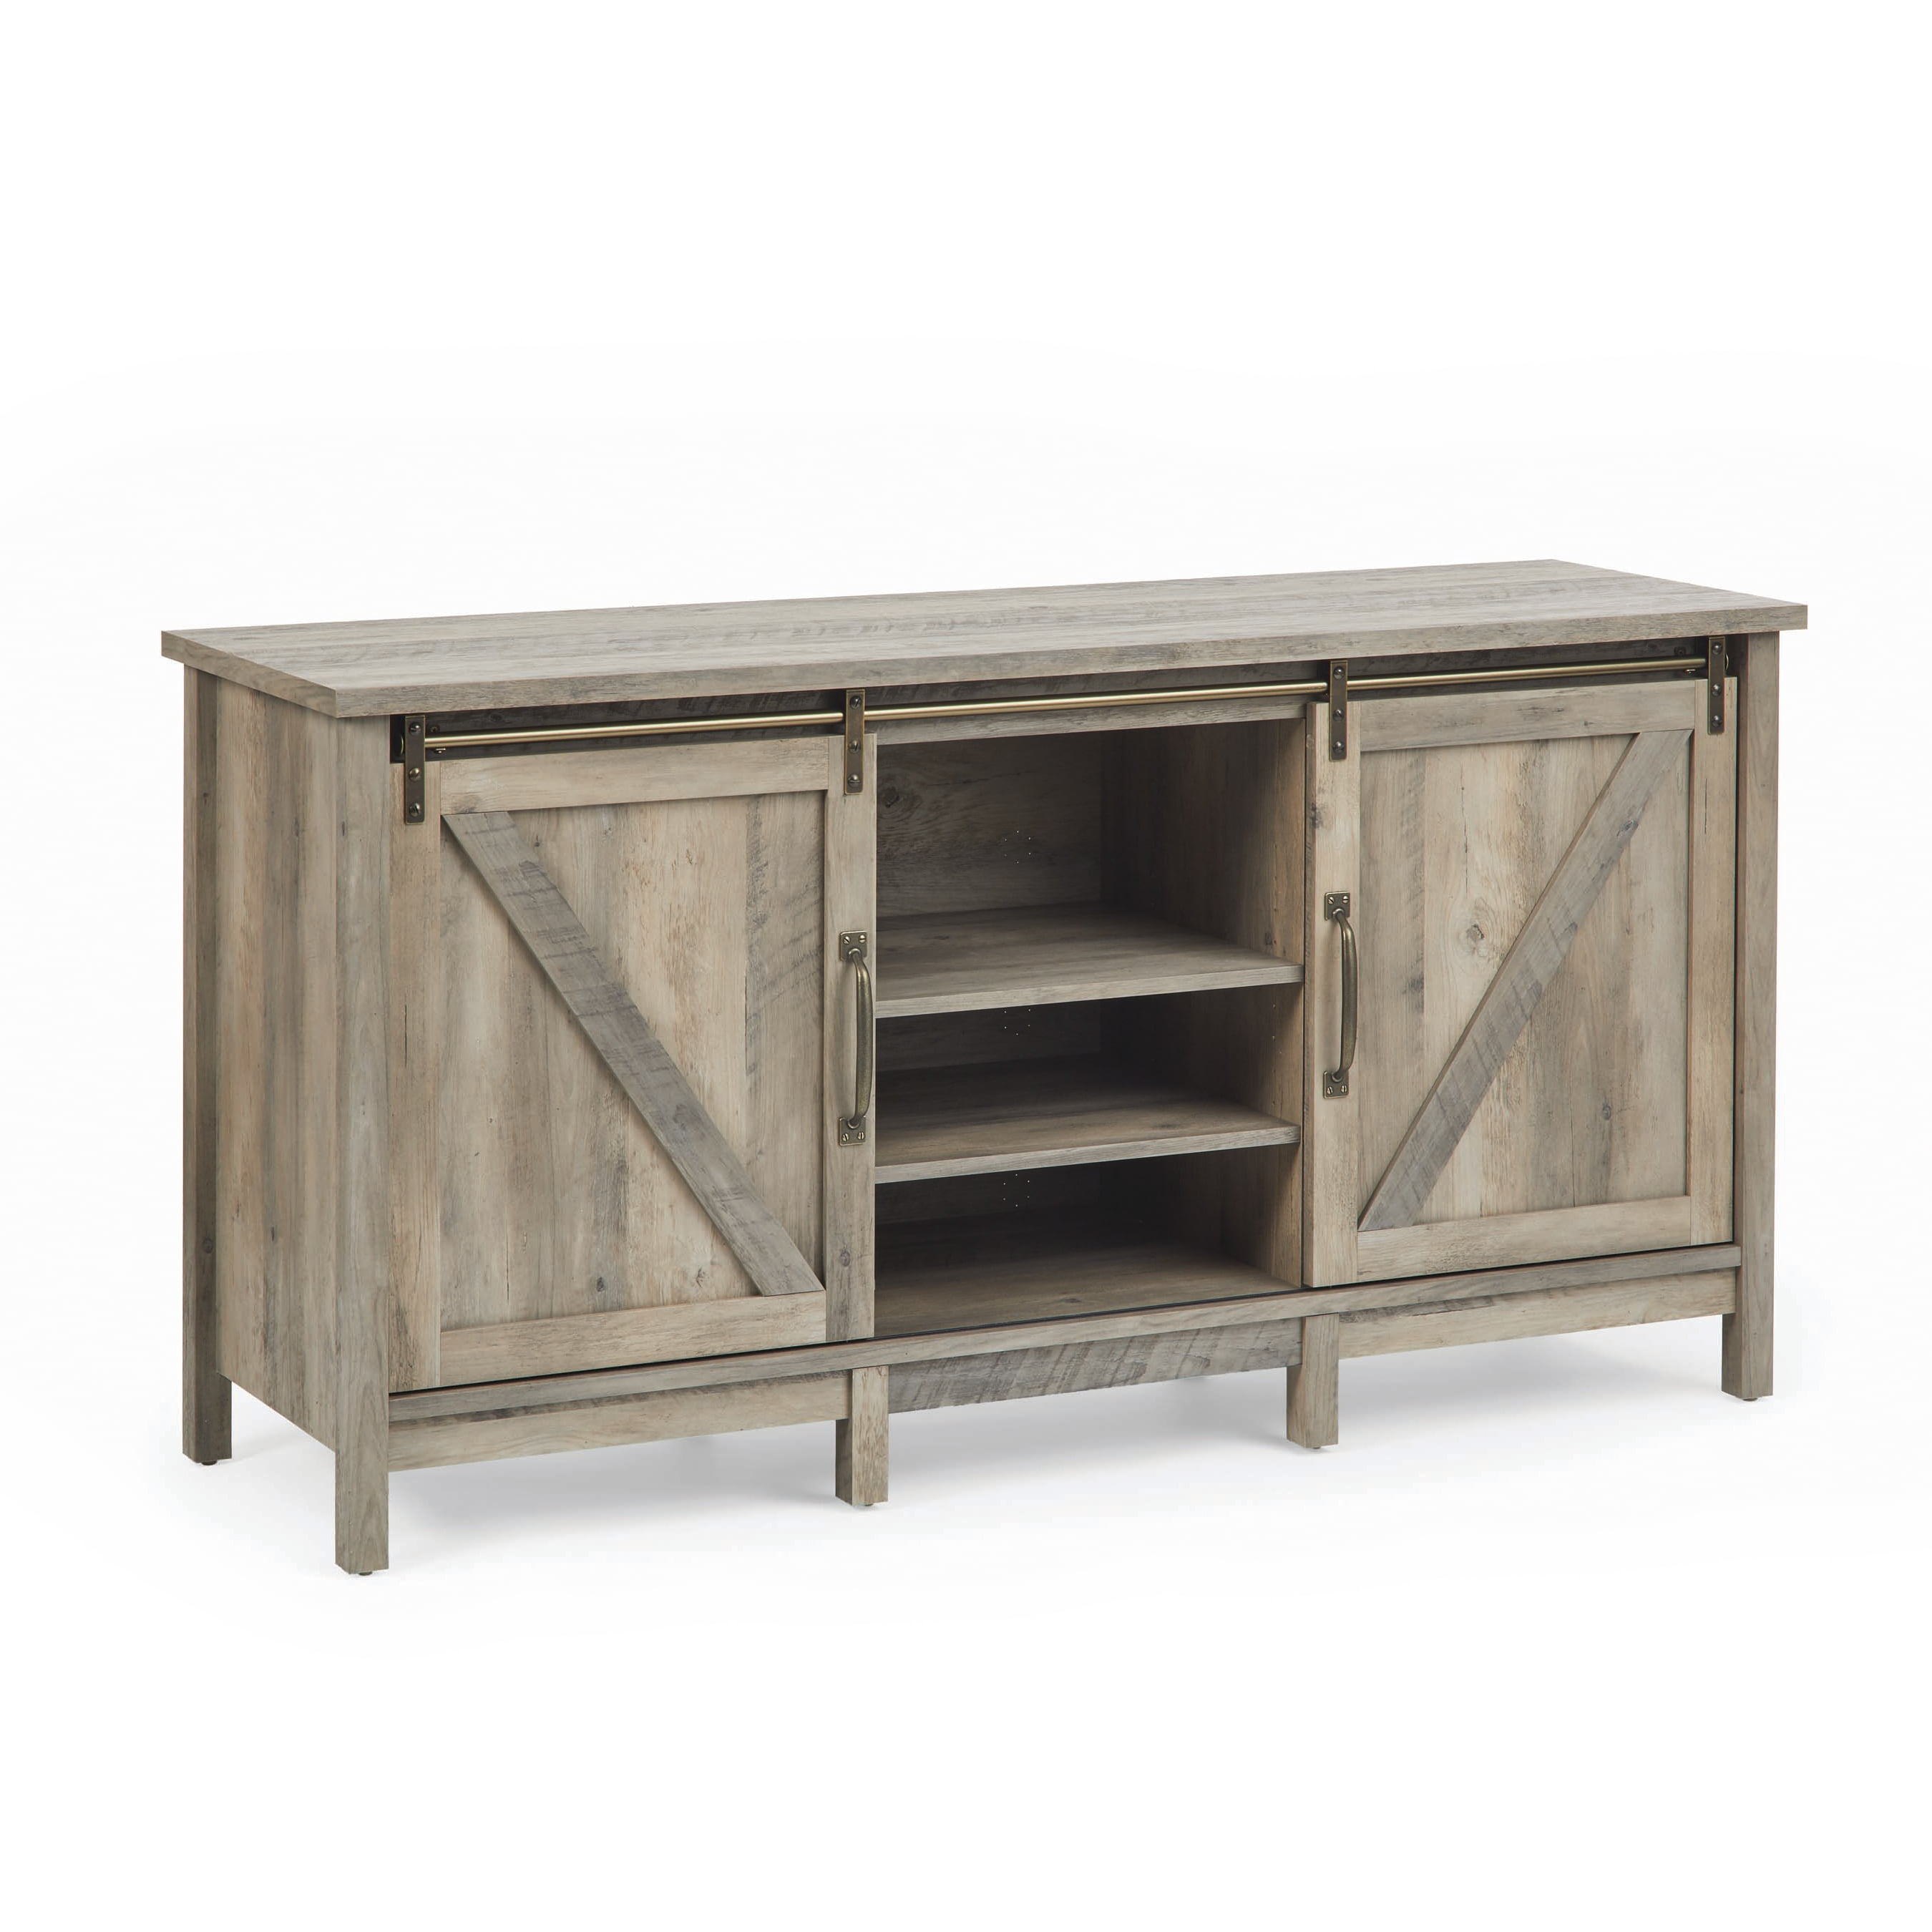 Better Homes & Gardens Modern Farmhouse TV Stand for TVs up to 60\ by Sauder Woodworking